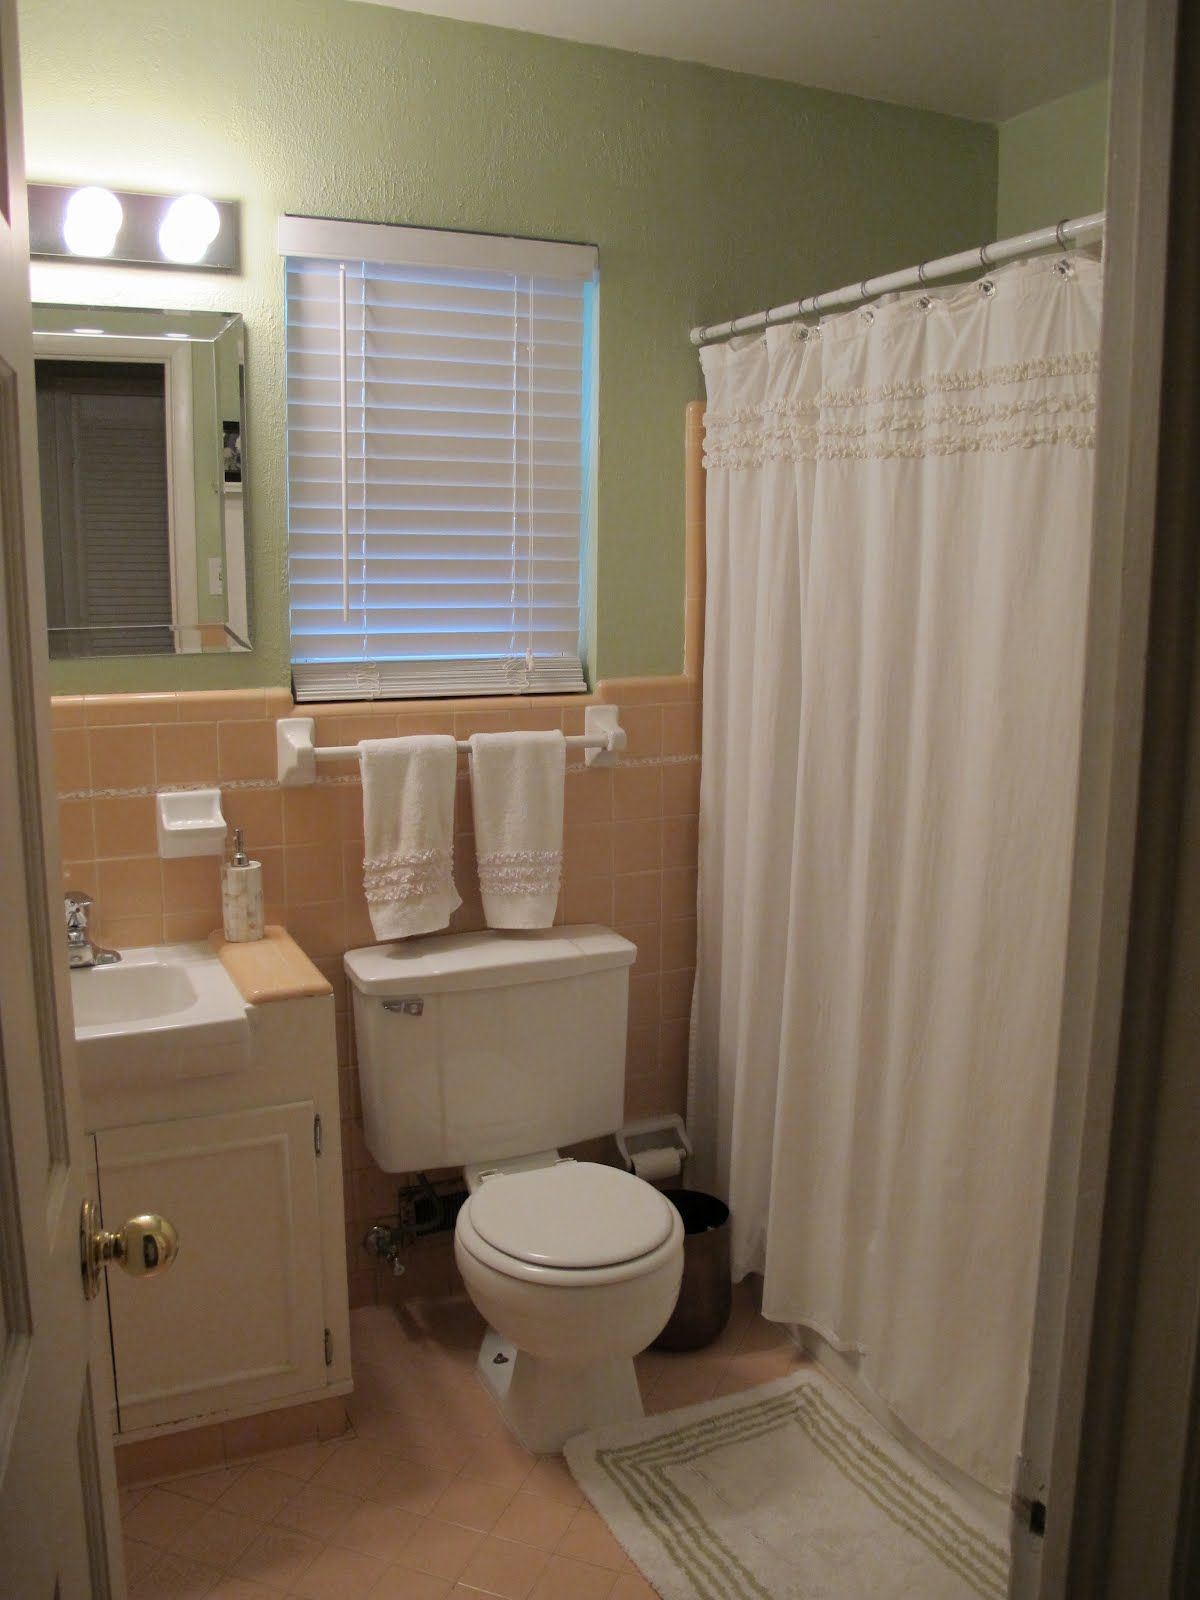 Help, Peach/Brown Bathroom Tile - Home Decorating & Design ...